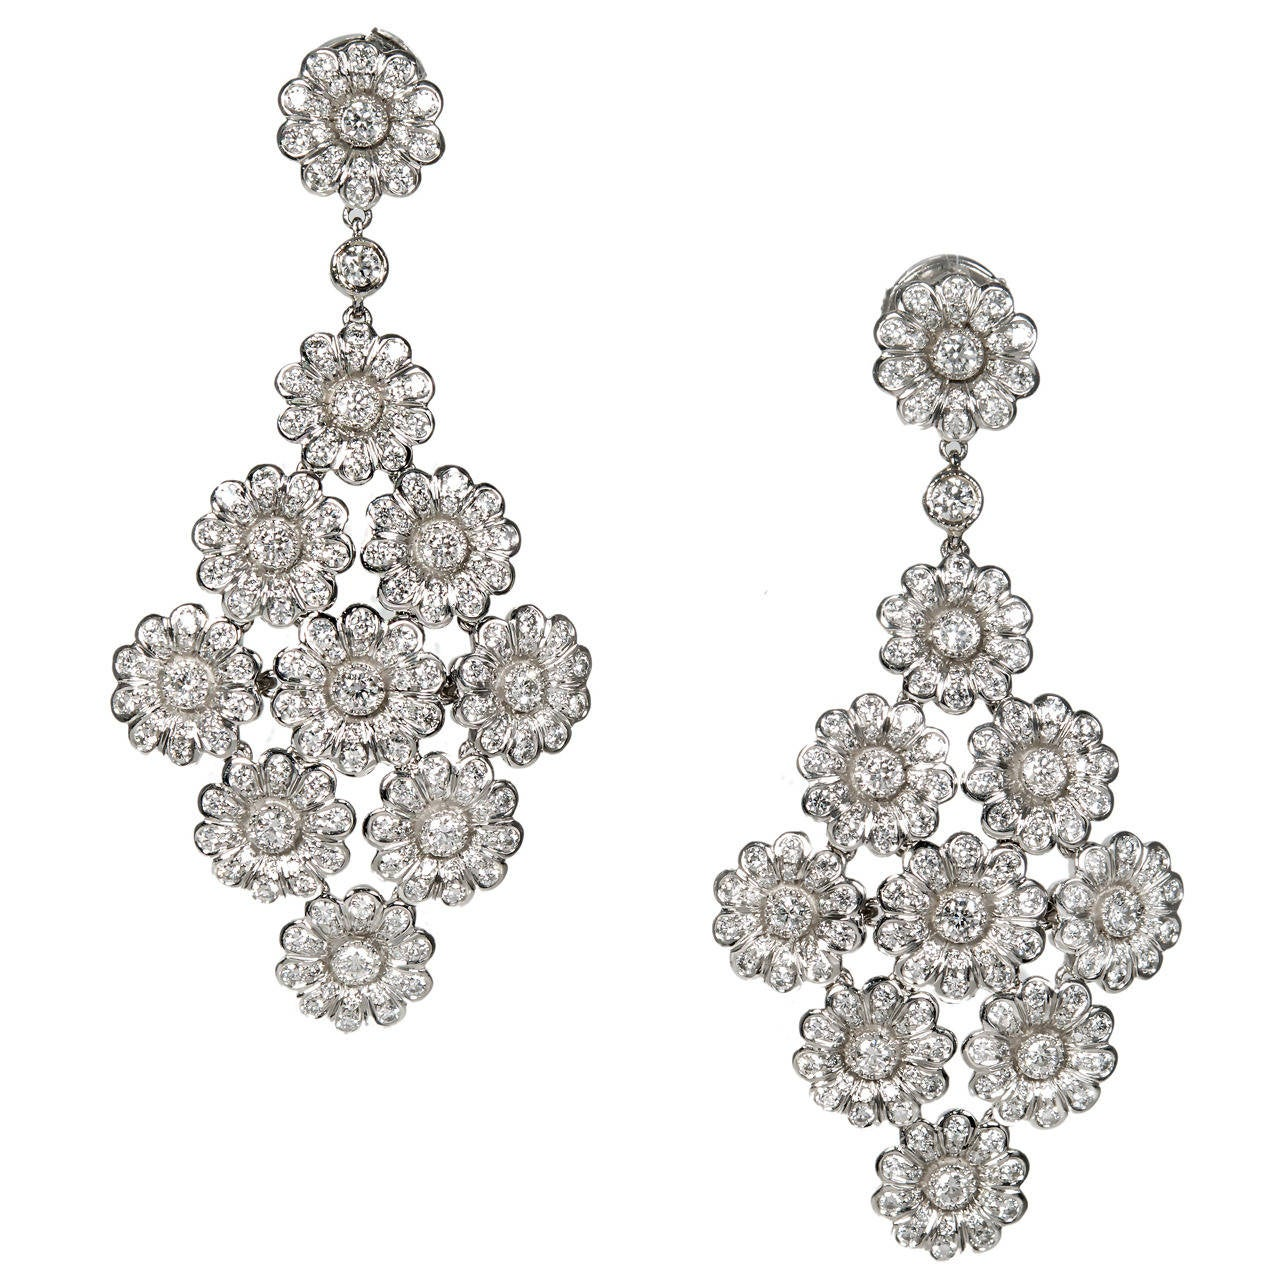 Tiffany & Co. 4.15 Carat Diamond Platinum Dangle Chandelier Earrings